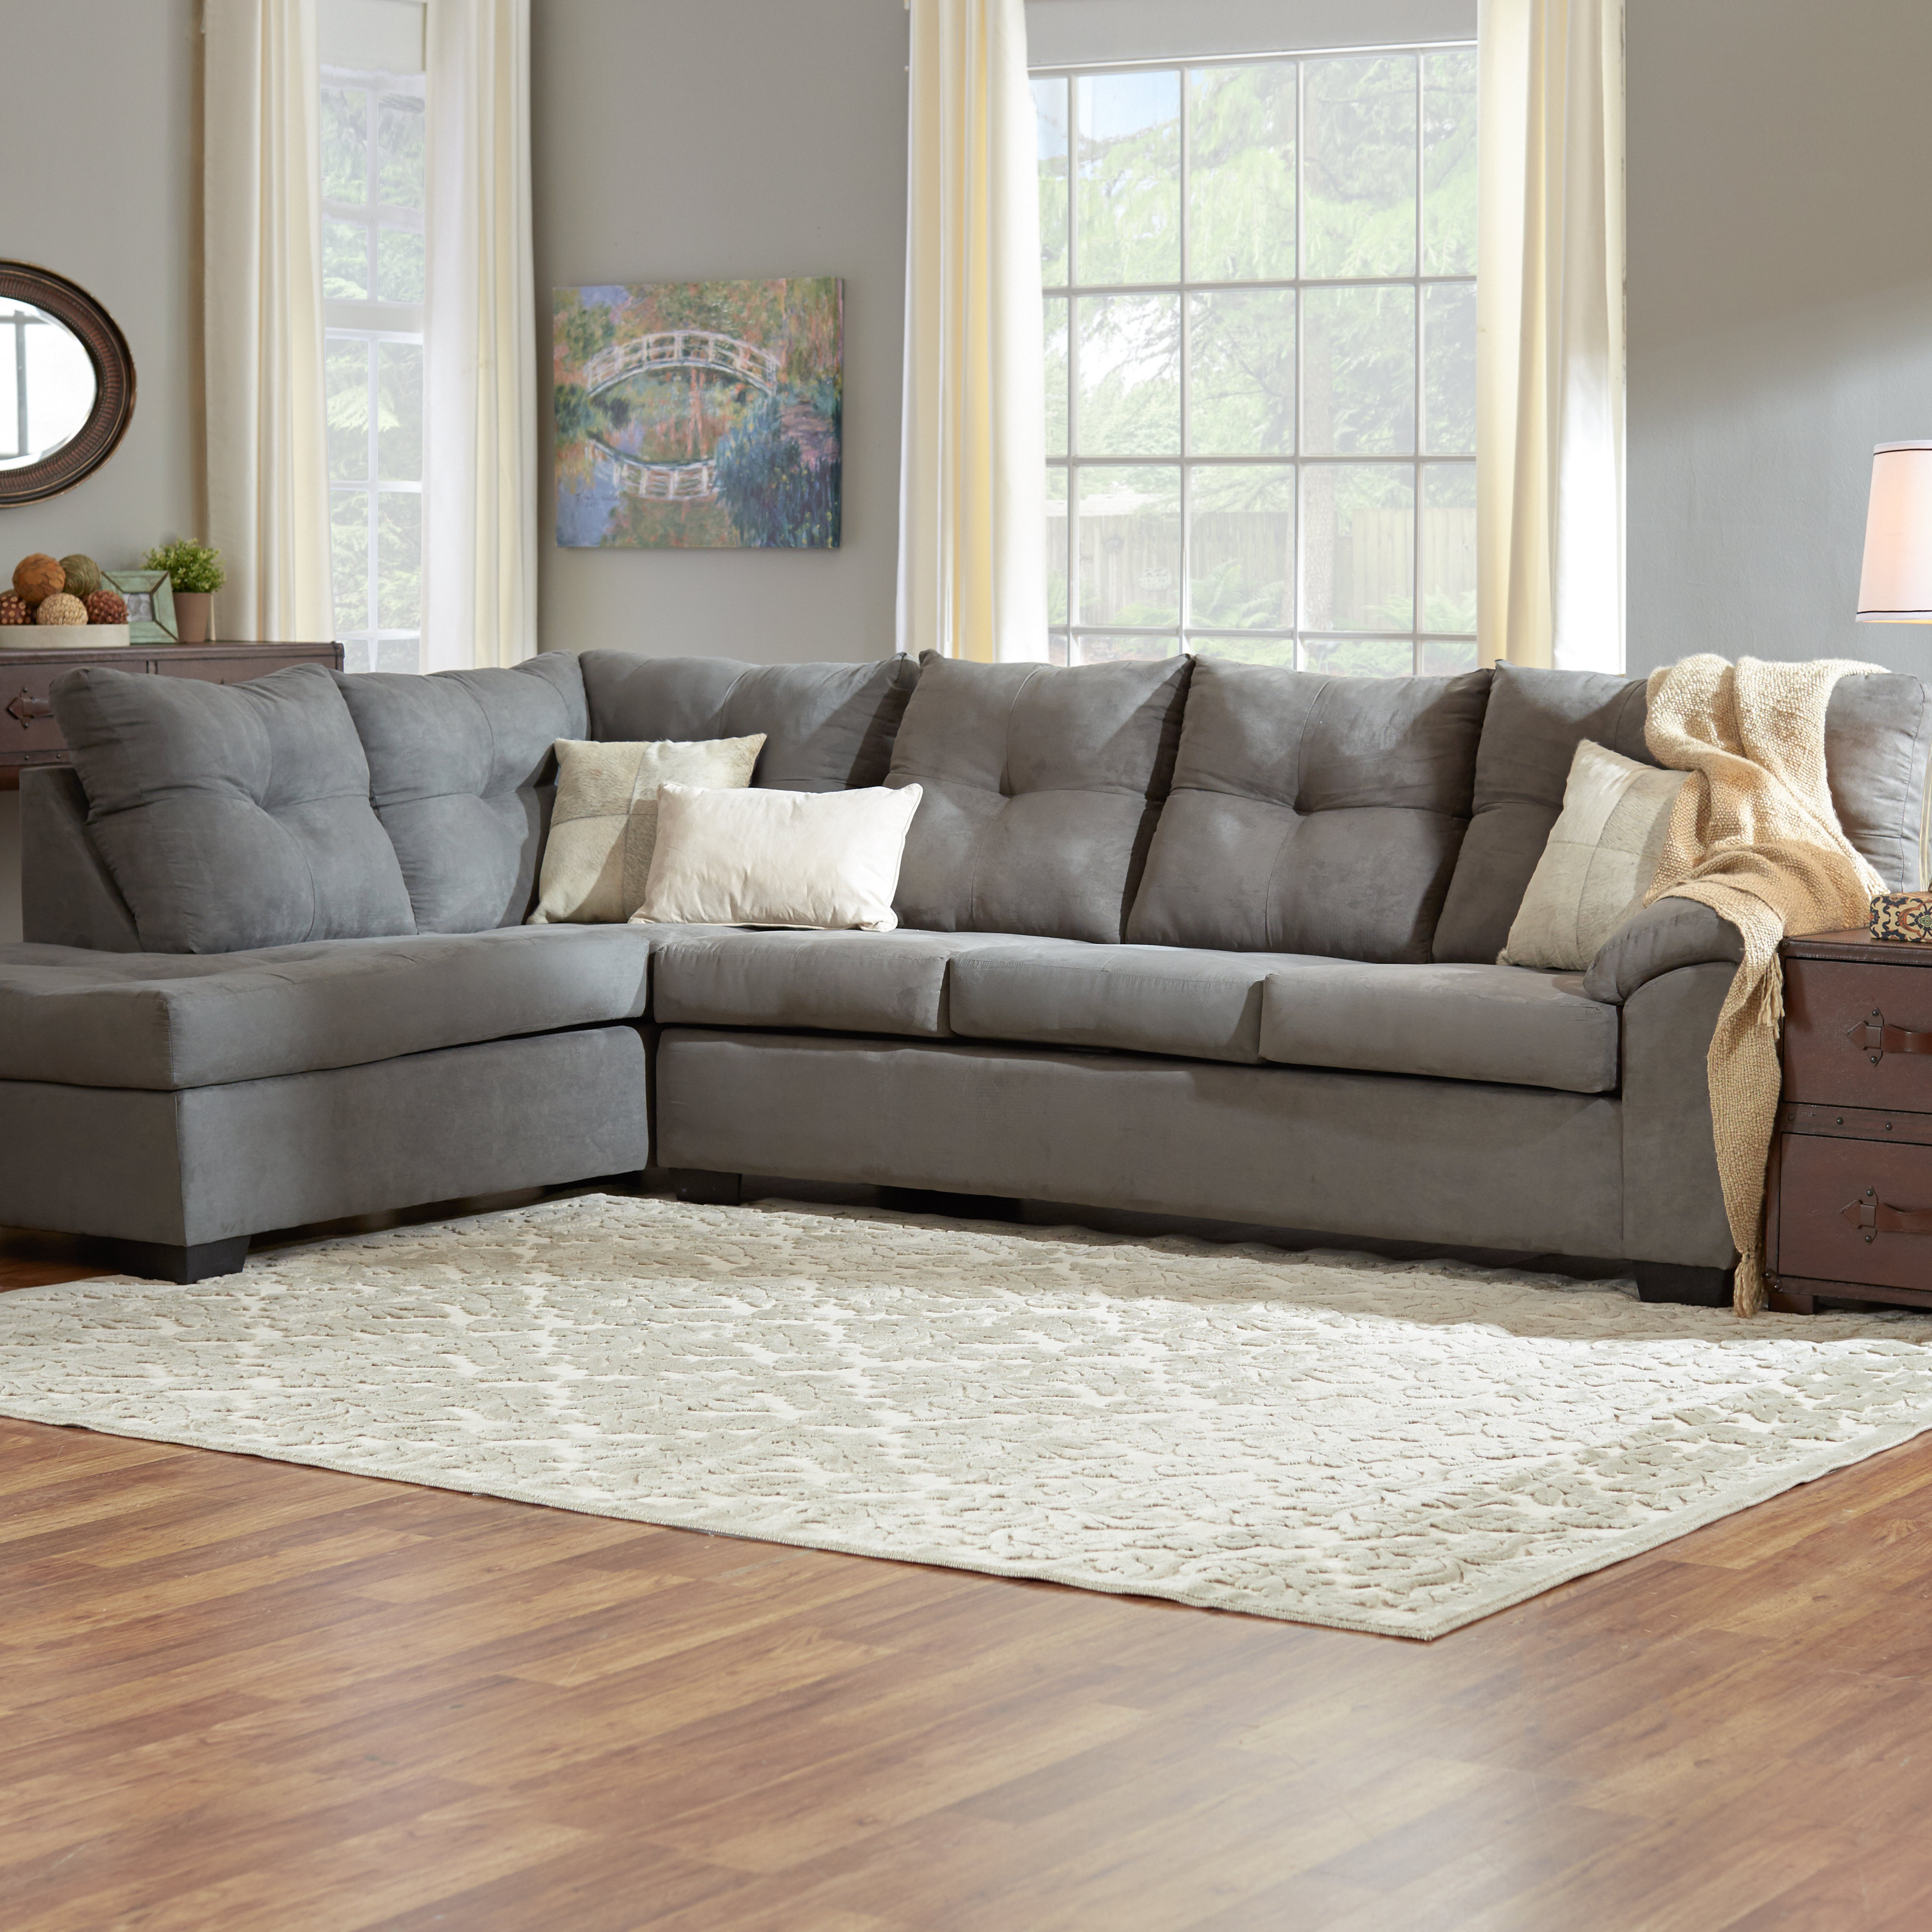 Wayfair For Most Up To Date Kristen Silver Grey 6 Piece Power Reclining Sectionals (View 17 of 20)